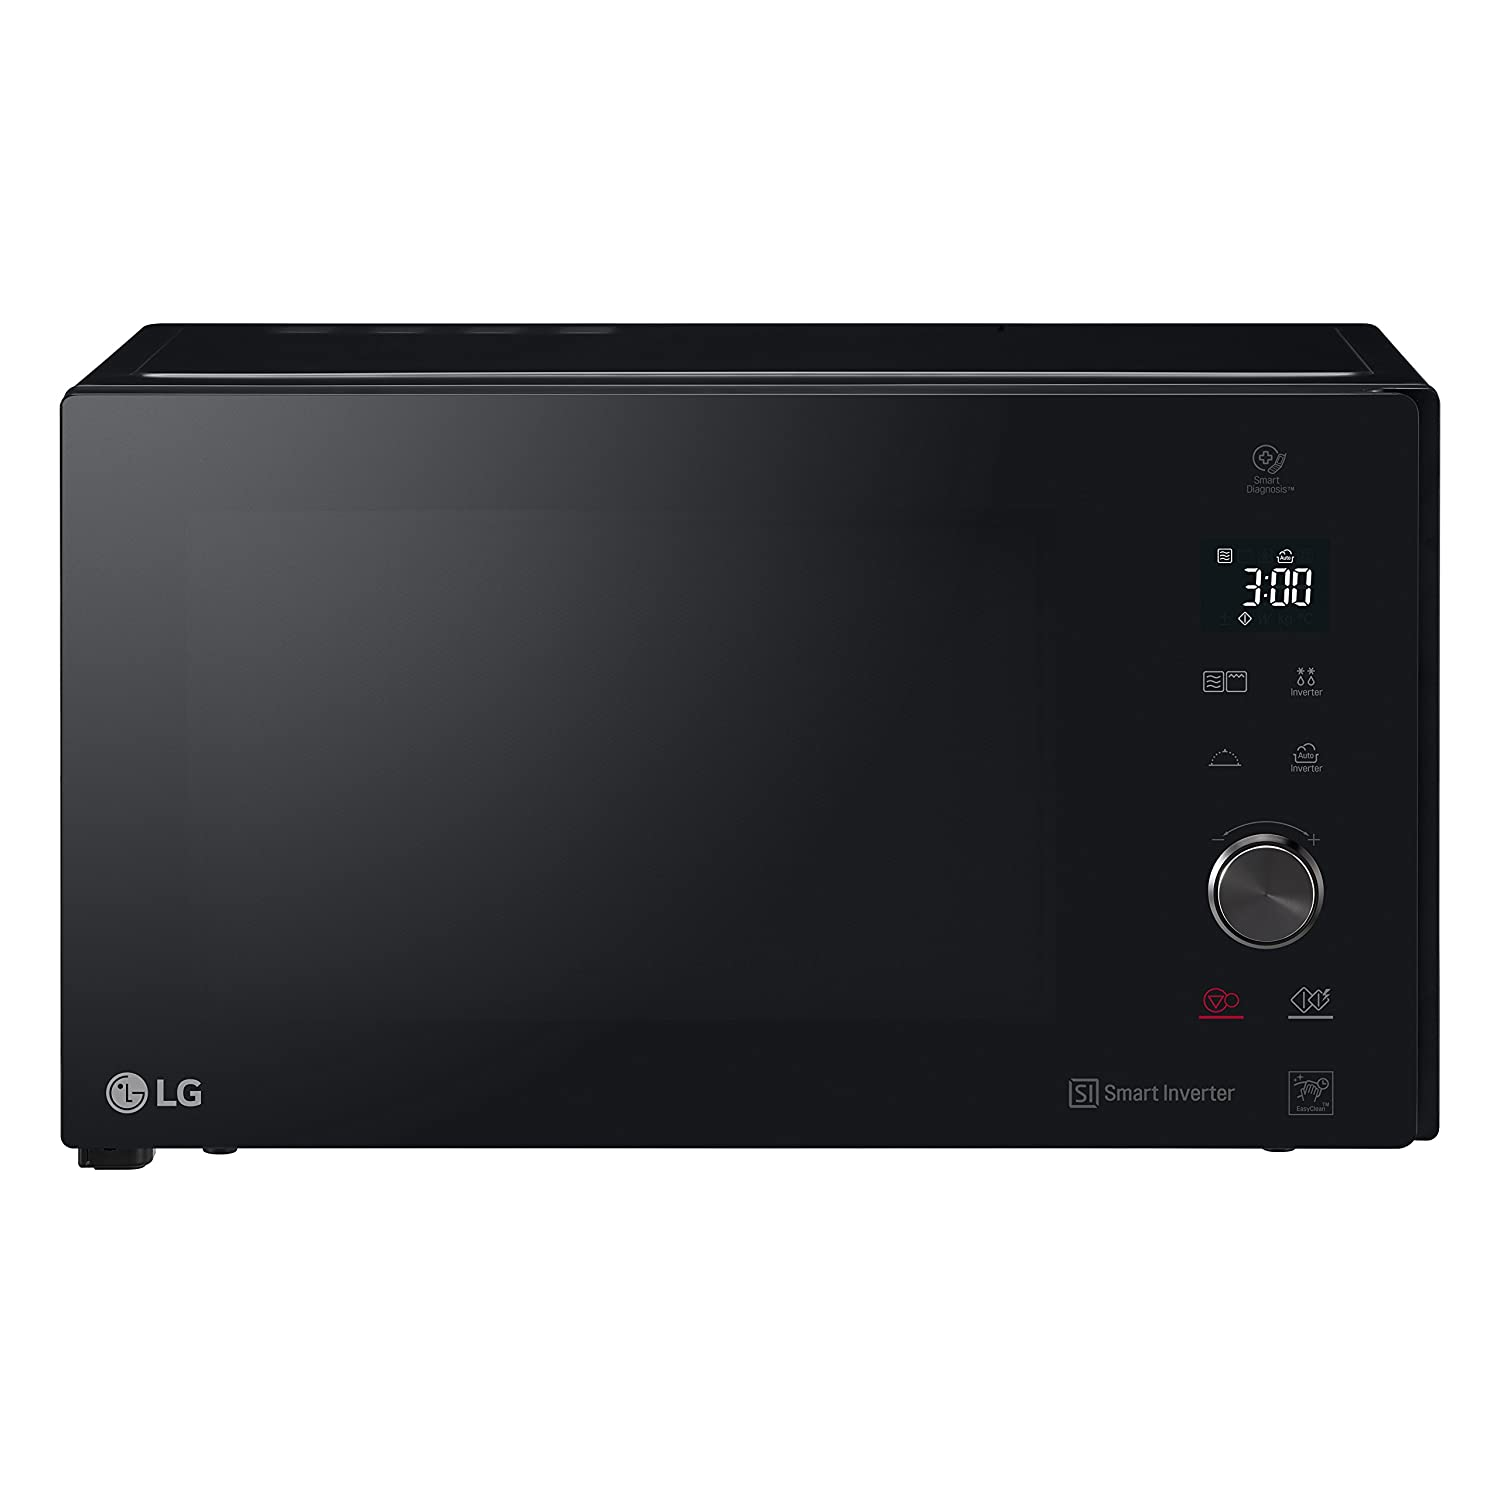 LG MHDPS – Microwave x x mm Energy Class a plus